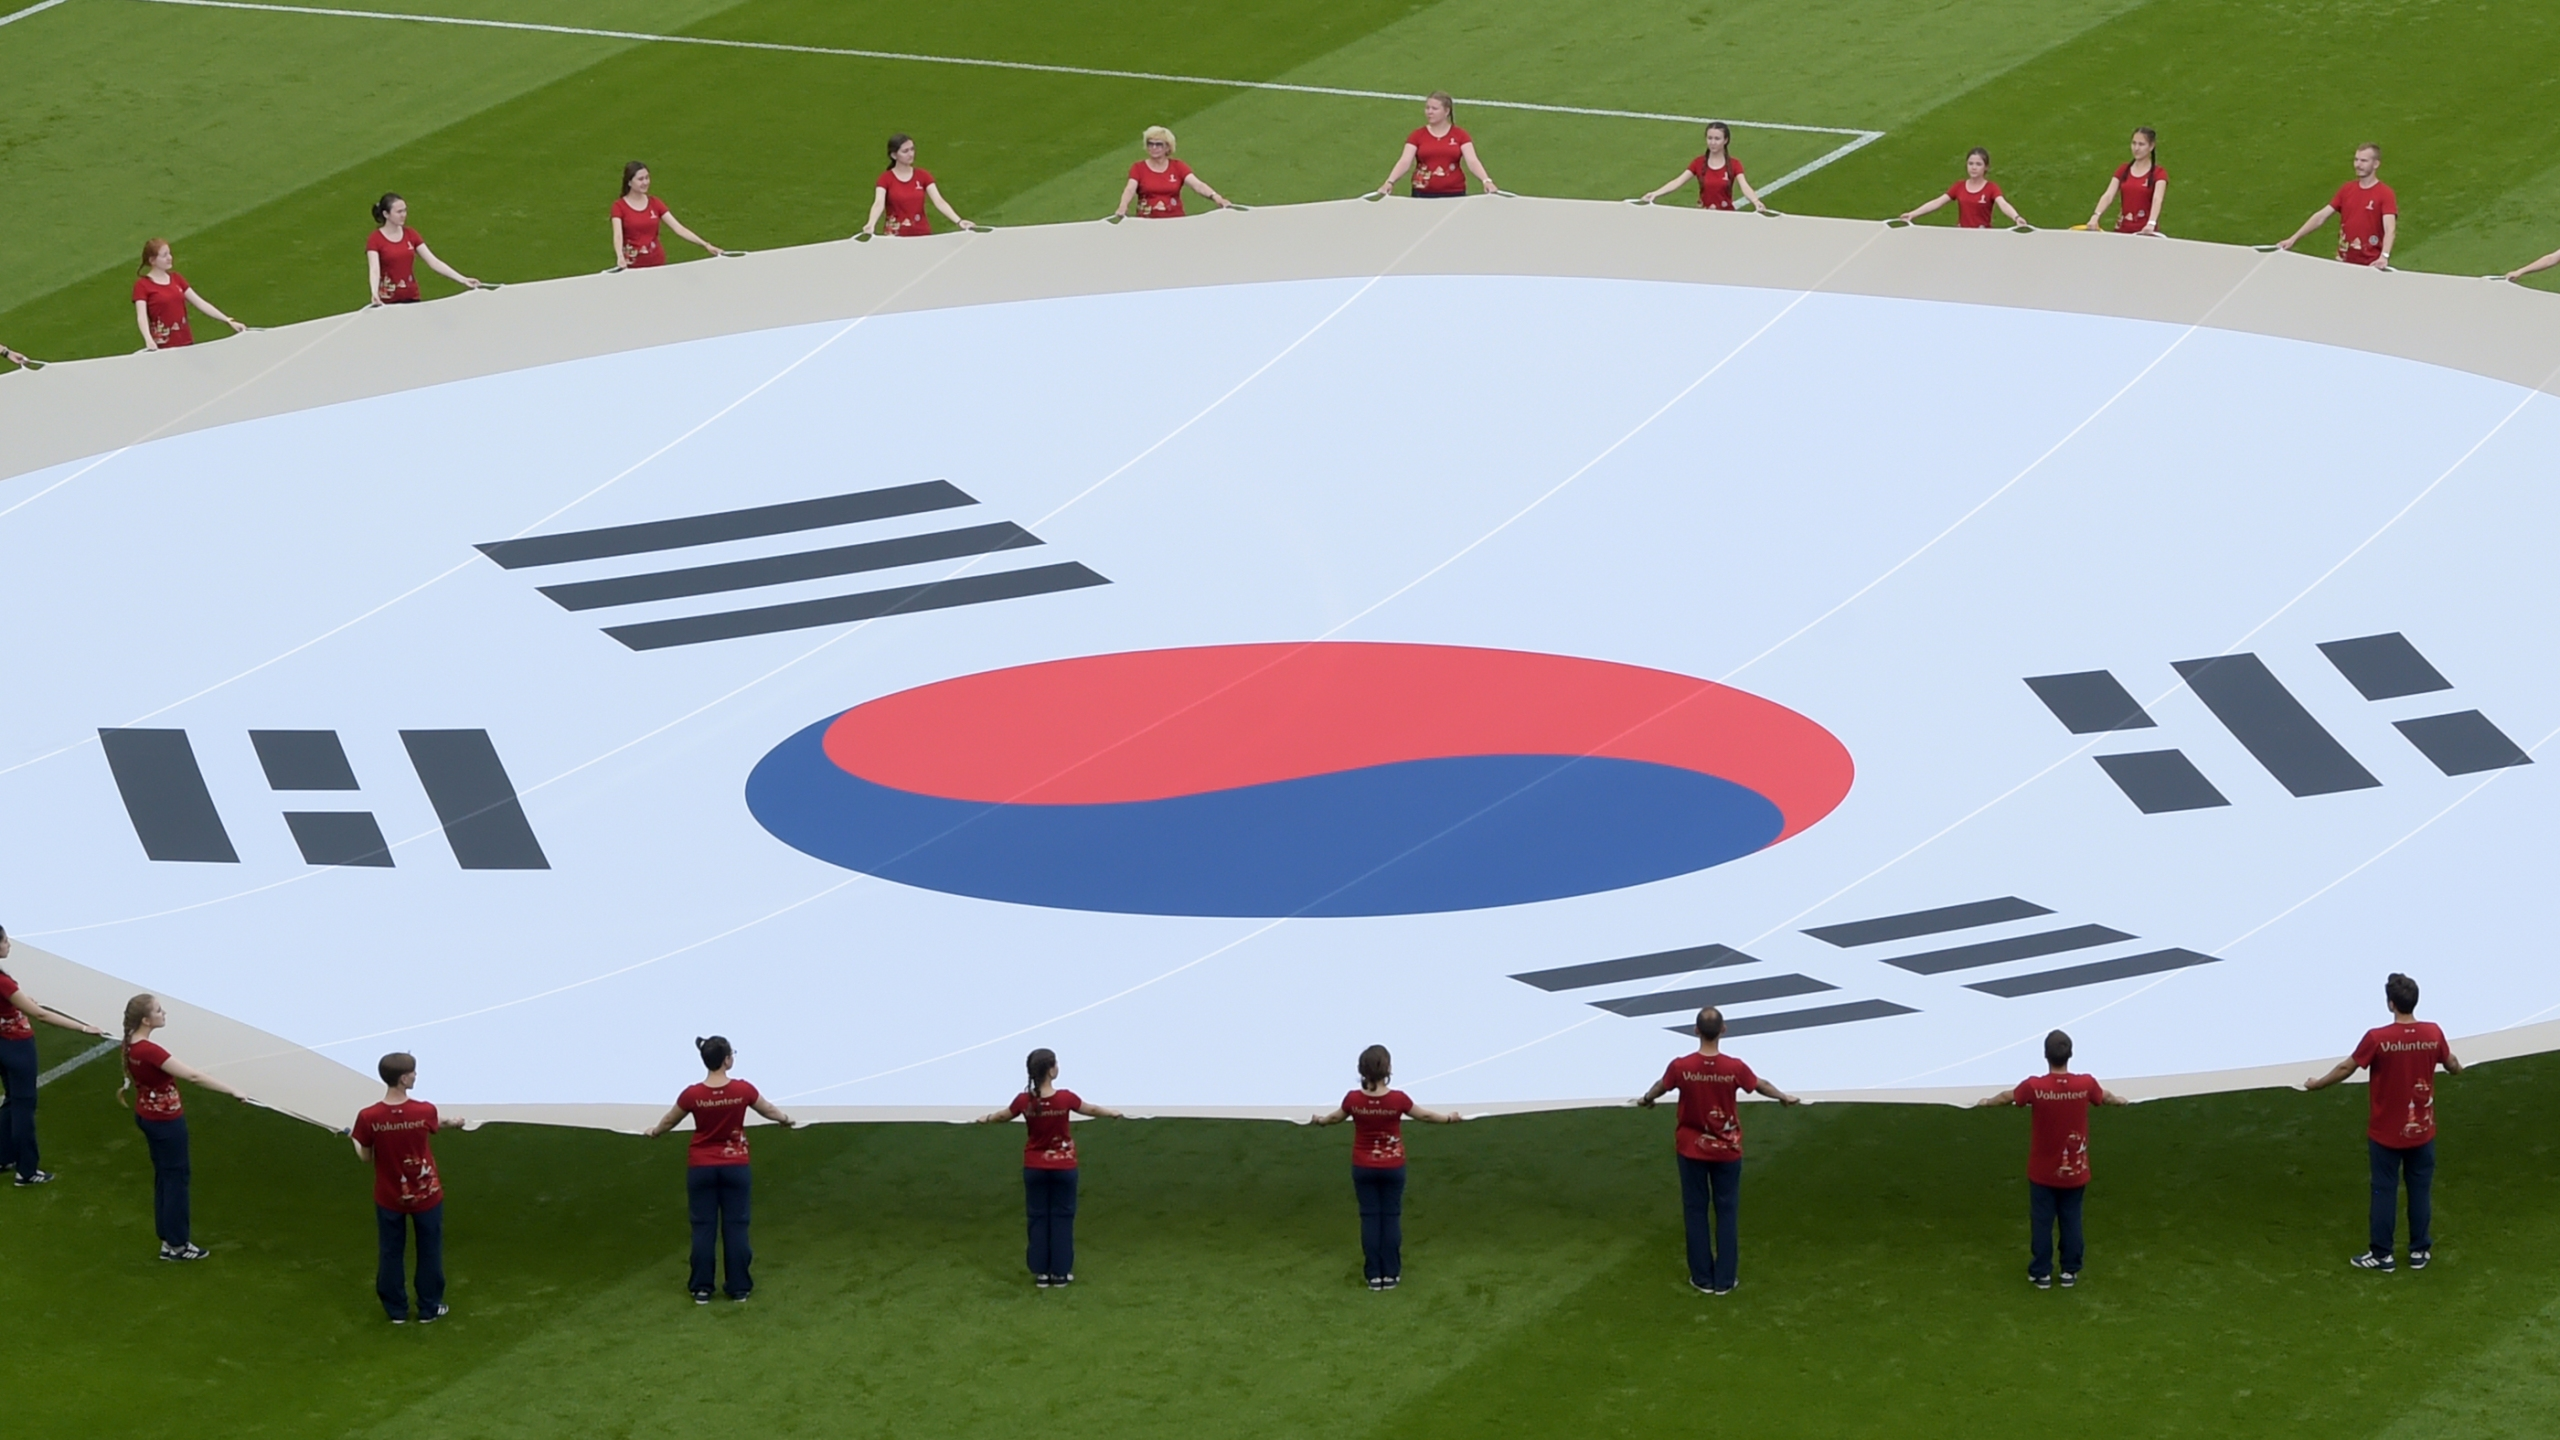 South Korea's flag is waved ahead of the Russia 2018 World Cup Group F football match between South Korea and Germany at the Kazan Arena in Kazan on June 27, 2018. (Credit: Luis Acosta/AFP)